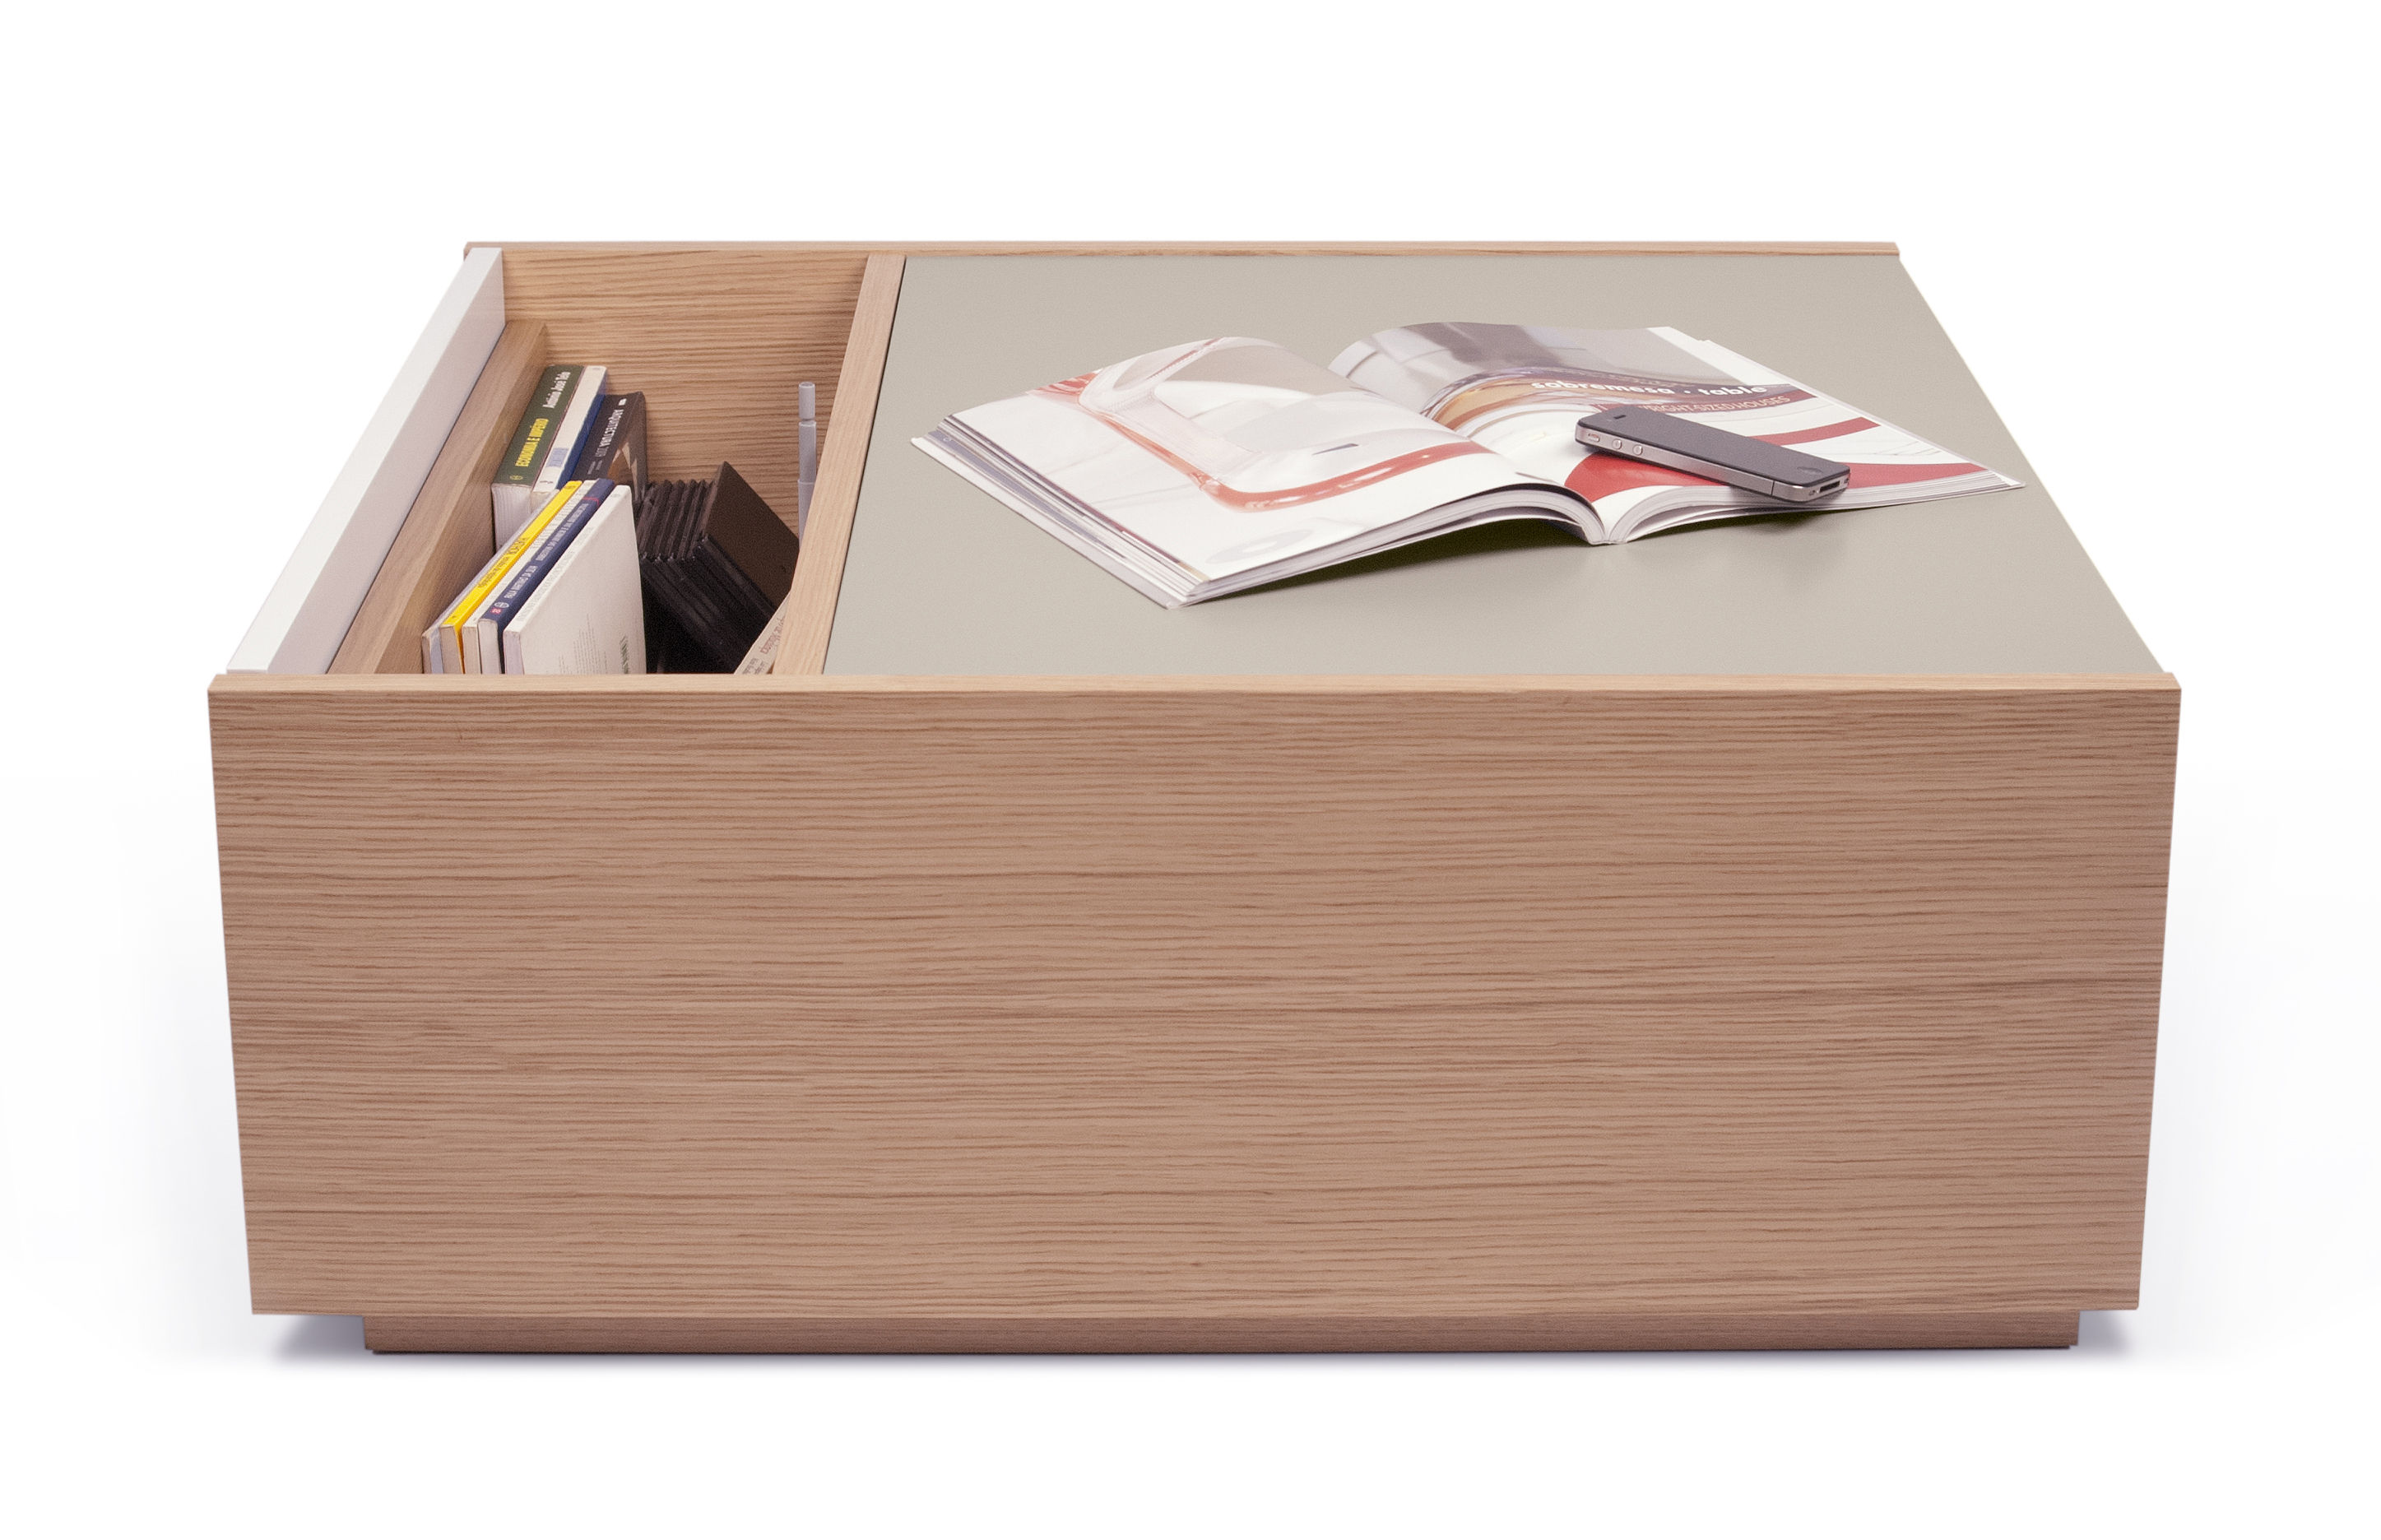 Amsterdam Coffee Table Chest Oak Grey White Top By Pop Up Home